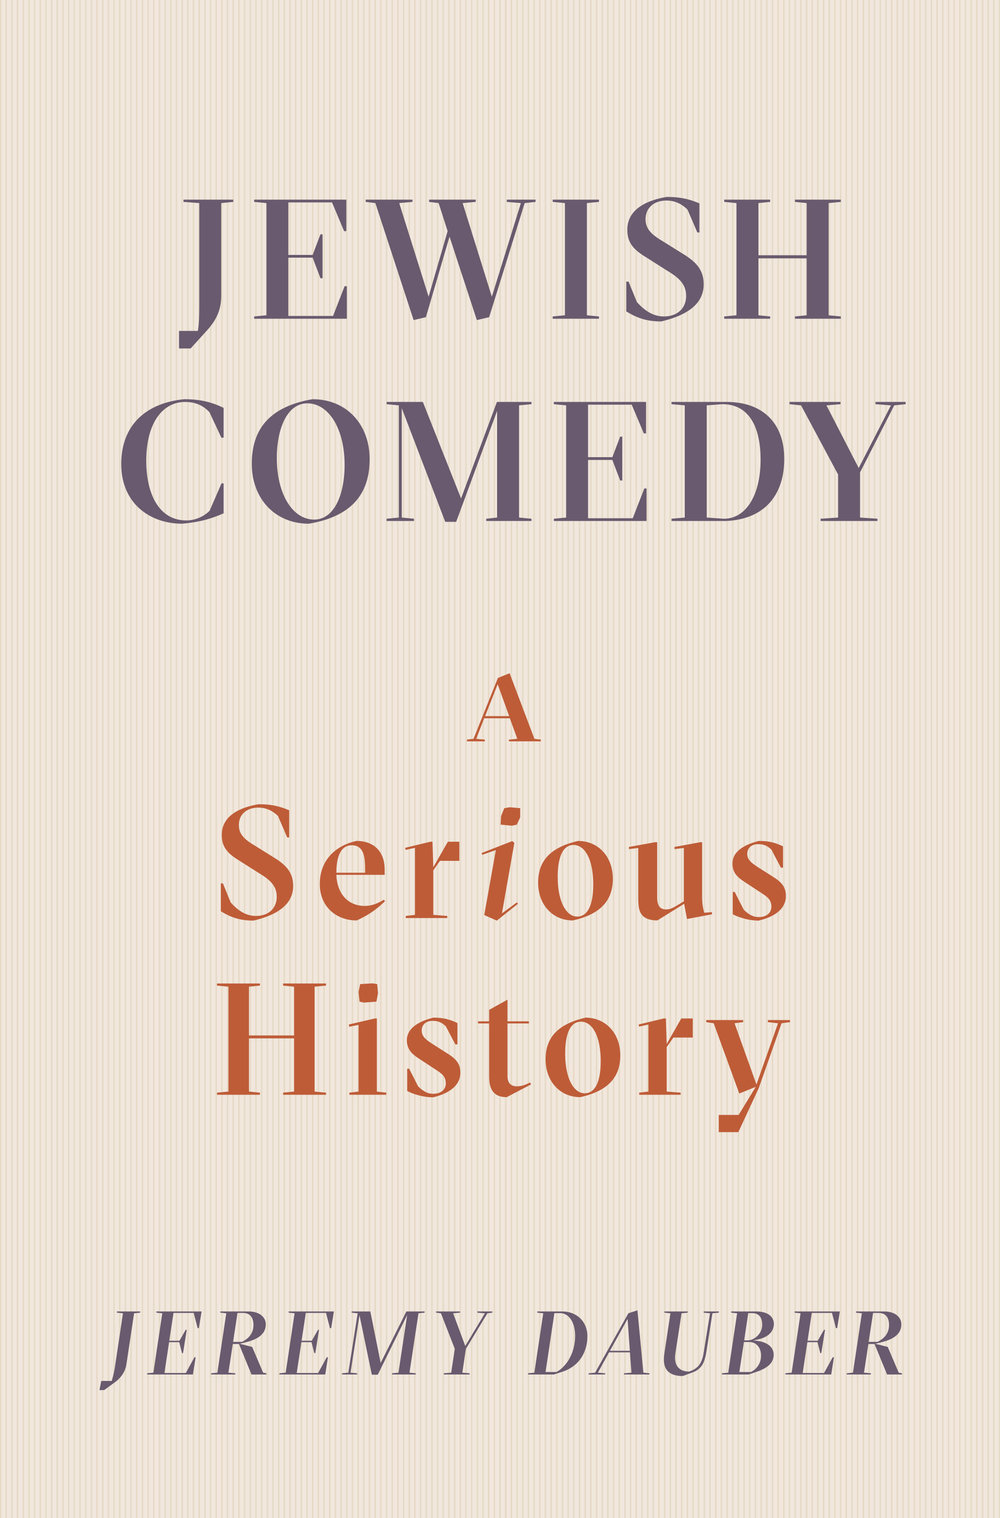 Jewish Comedy, A Serious History